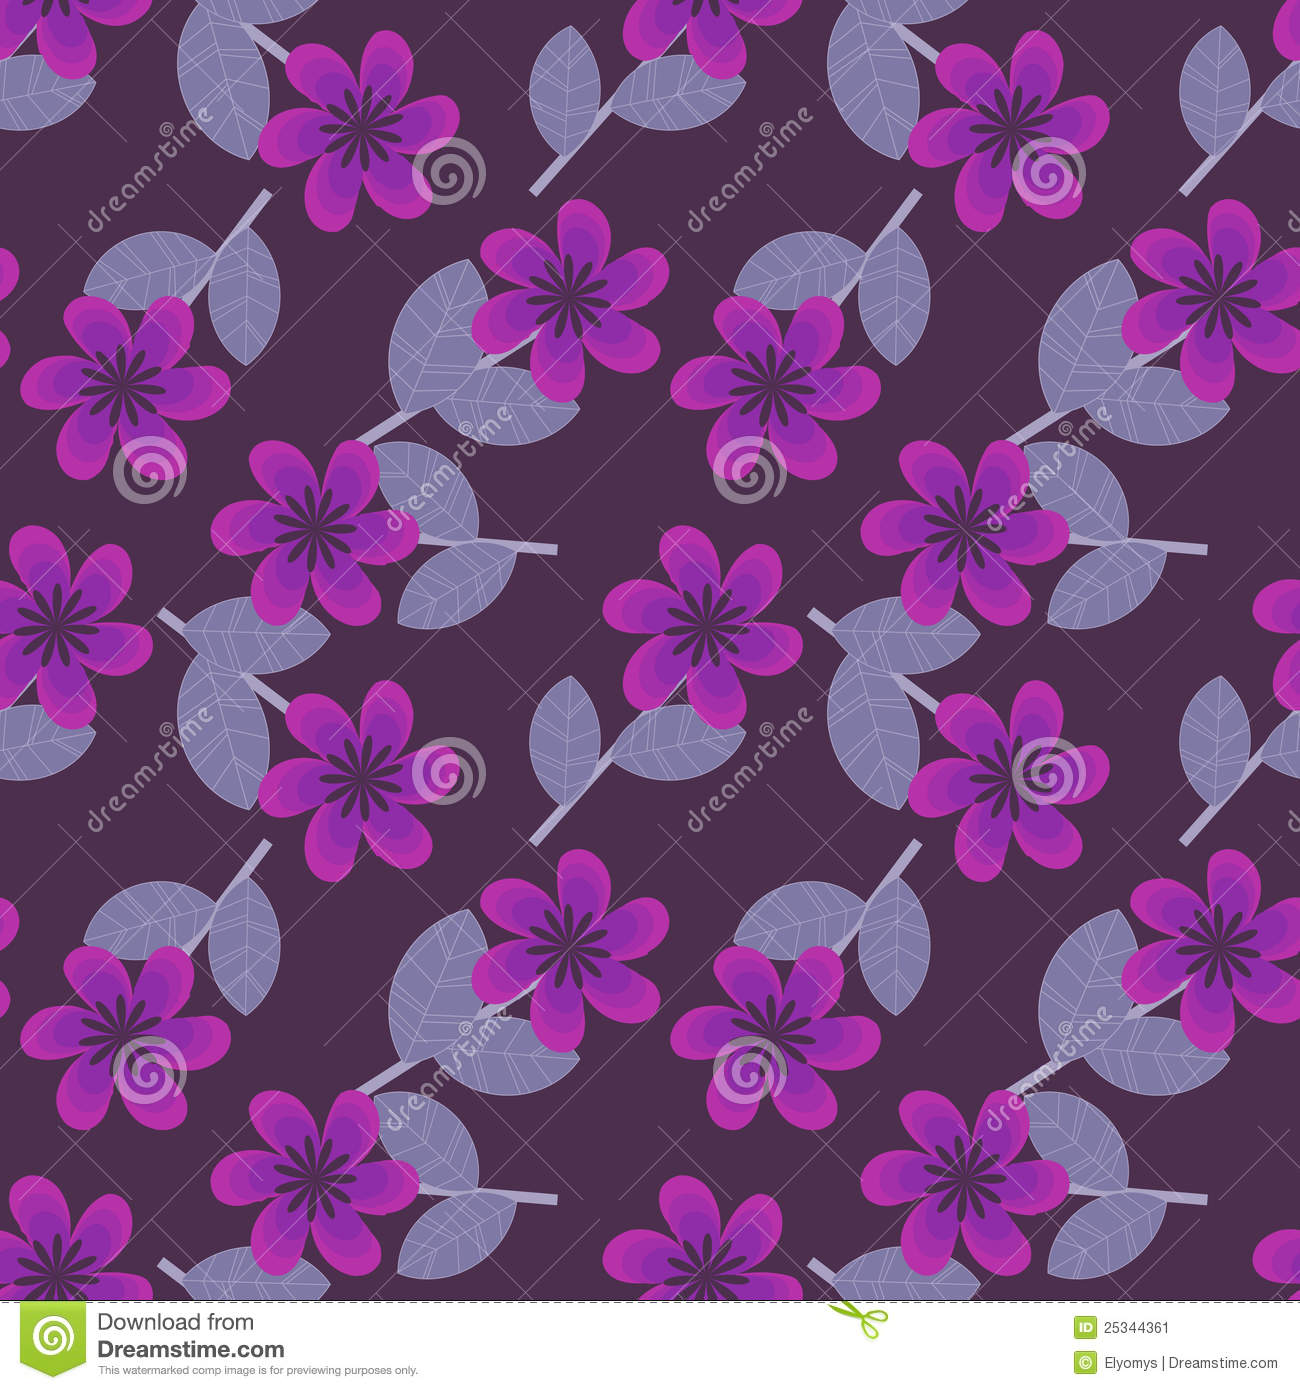 Purple Flowers Pattern Stock Image - Image: 25344361